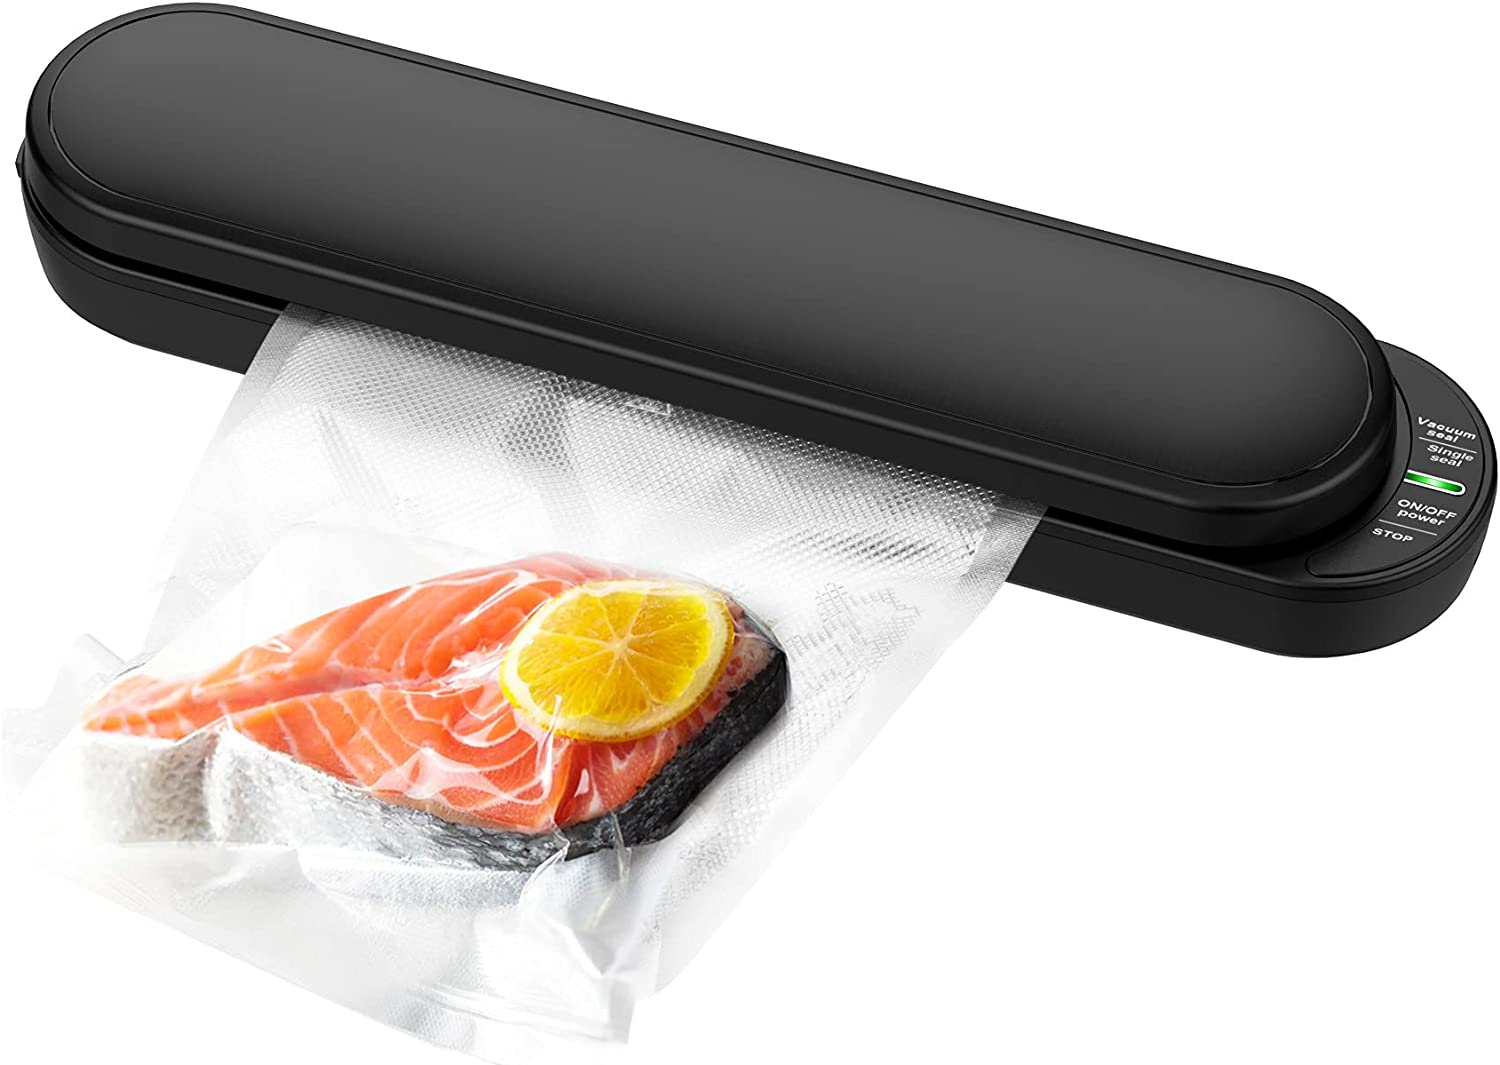 Vacuum Sealer Machine,Wireless Automatic Food Sealer for Food Savers Starter Kit with Dry Moist Food Modes,Portable Vacuum Packing Machine